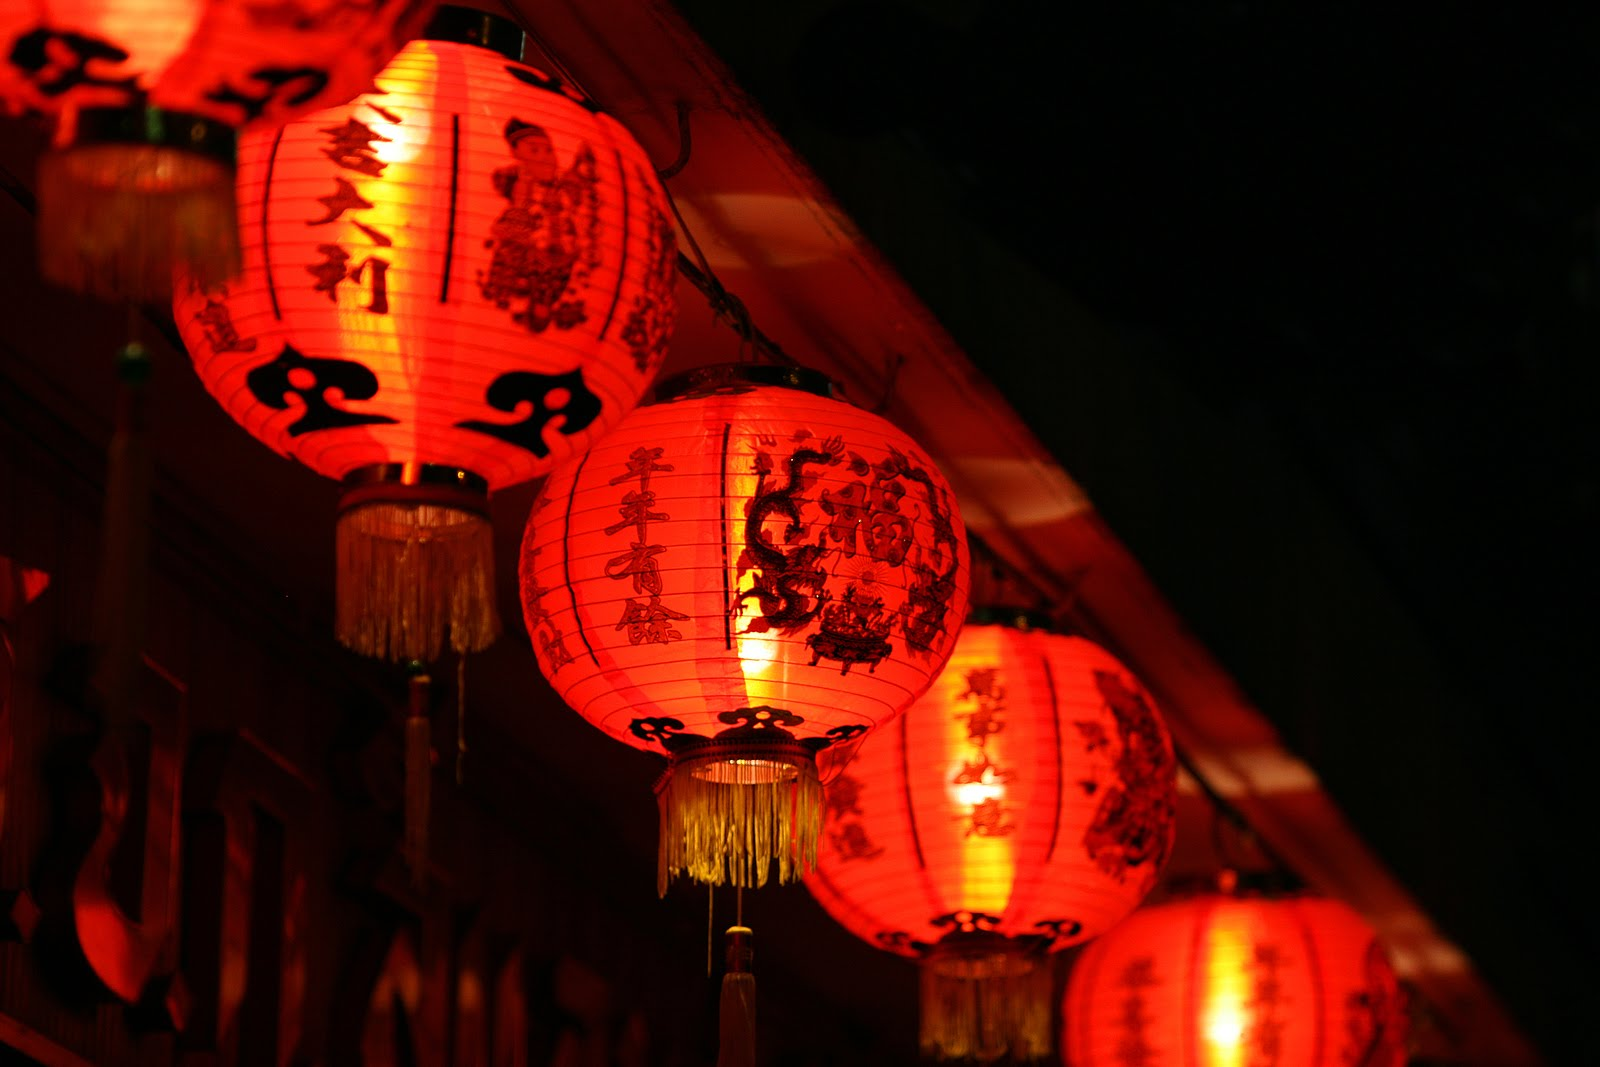 Happy Chinese Lantern Festival Marvels Of China Pathways To The Pacific Rim On Am 1490